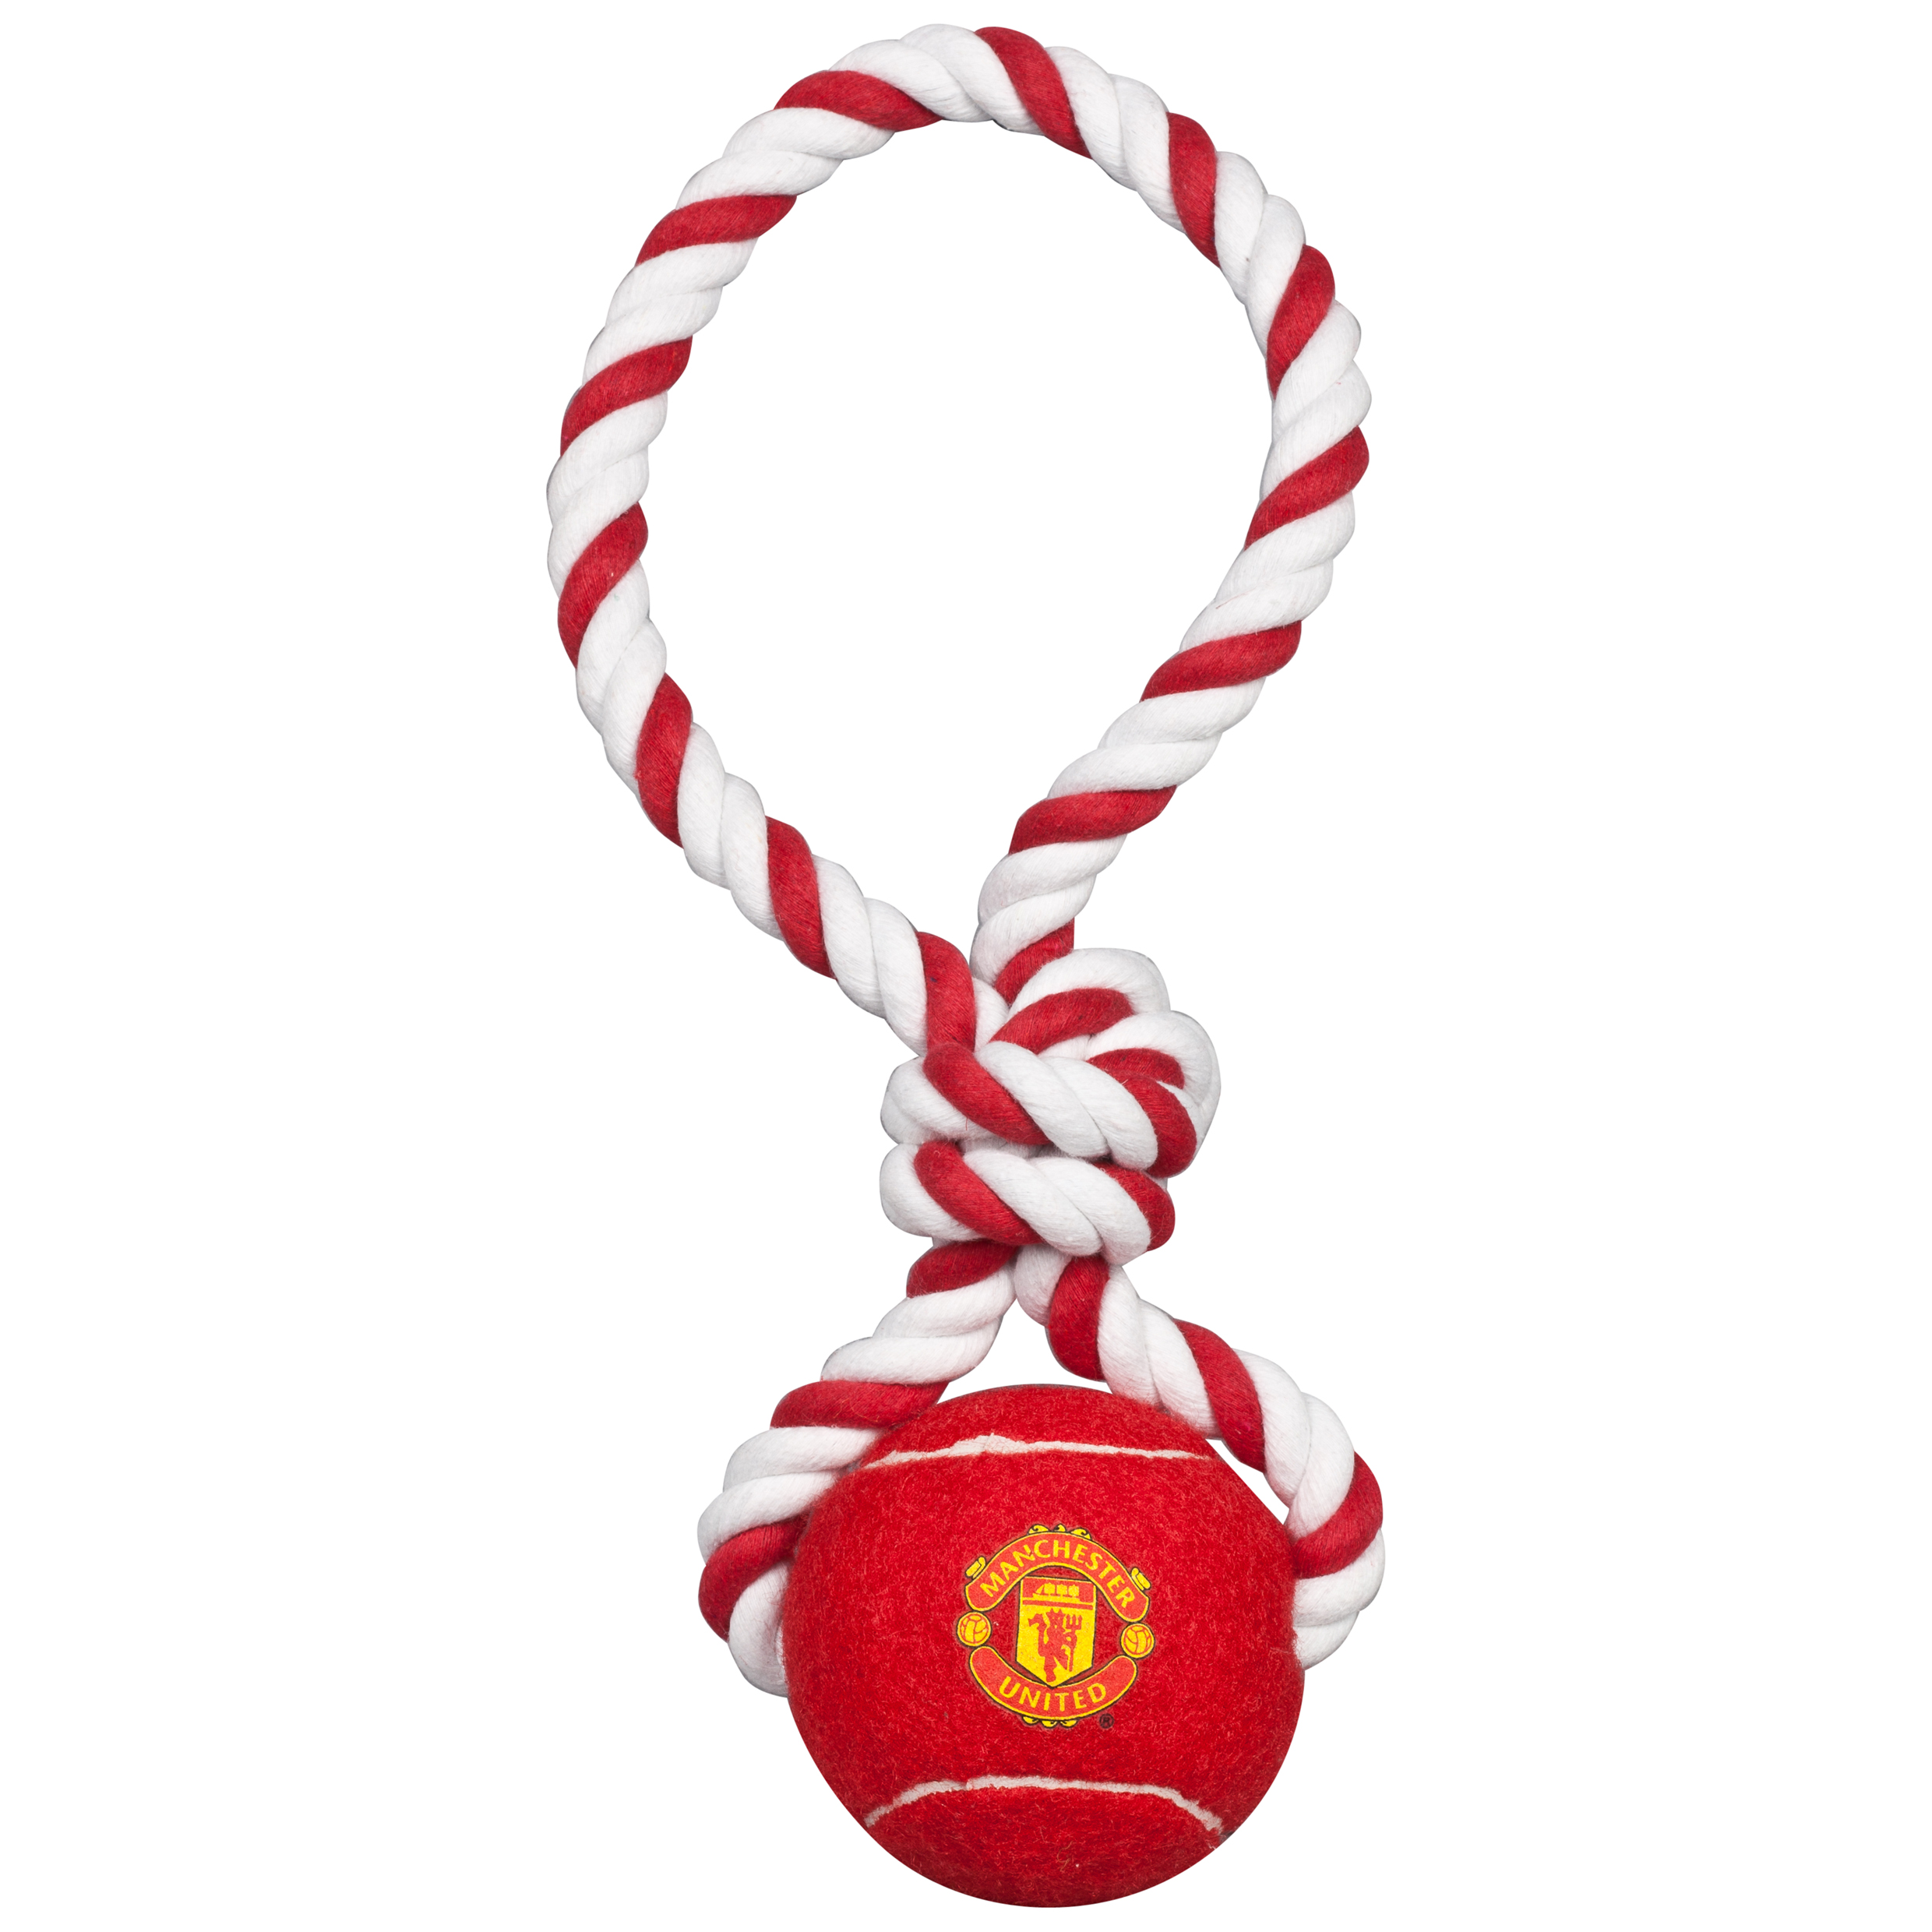 Manchester United Rope and Ball Tugger Dog Toy